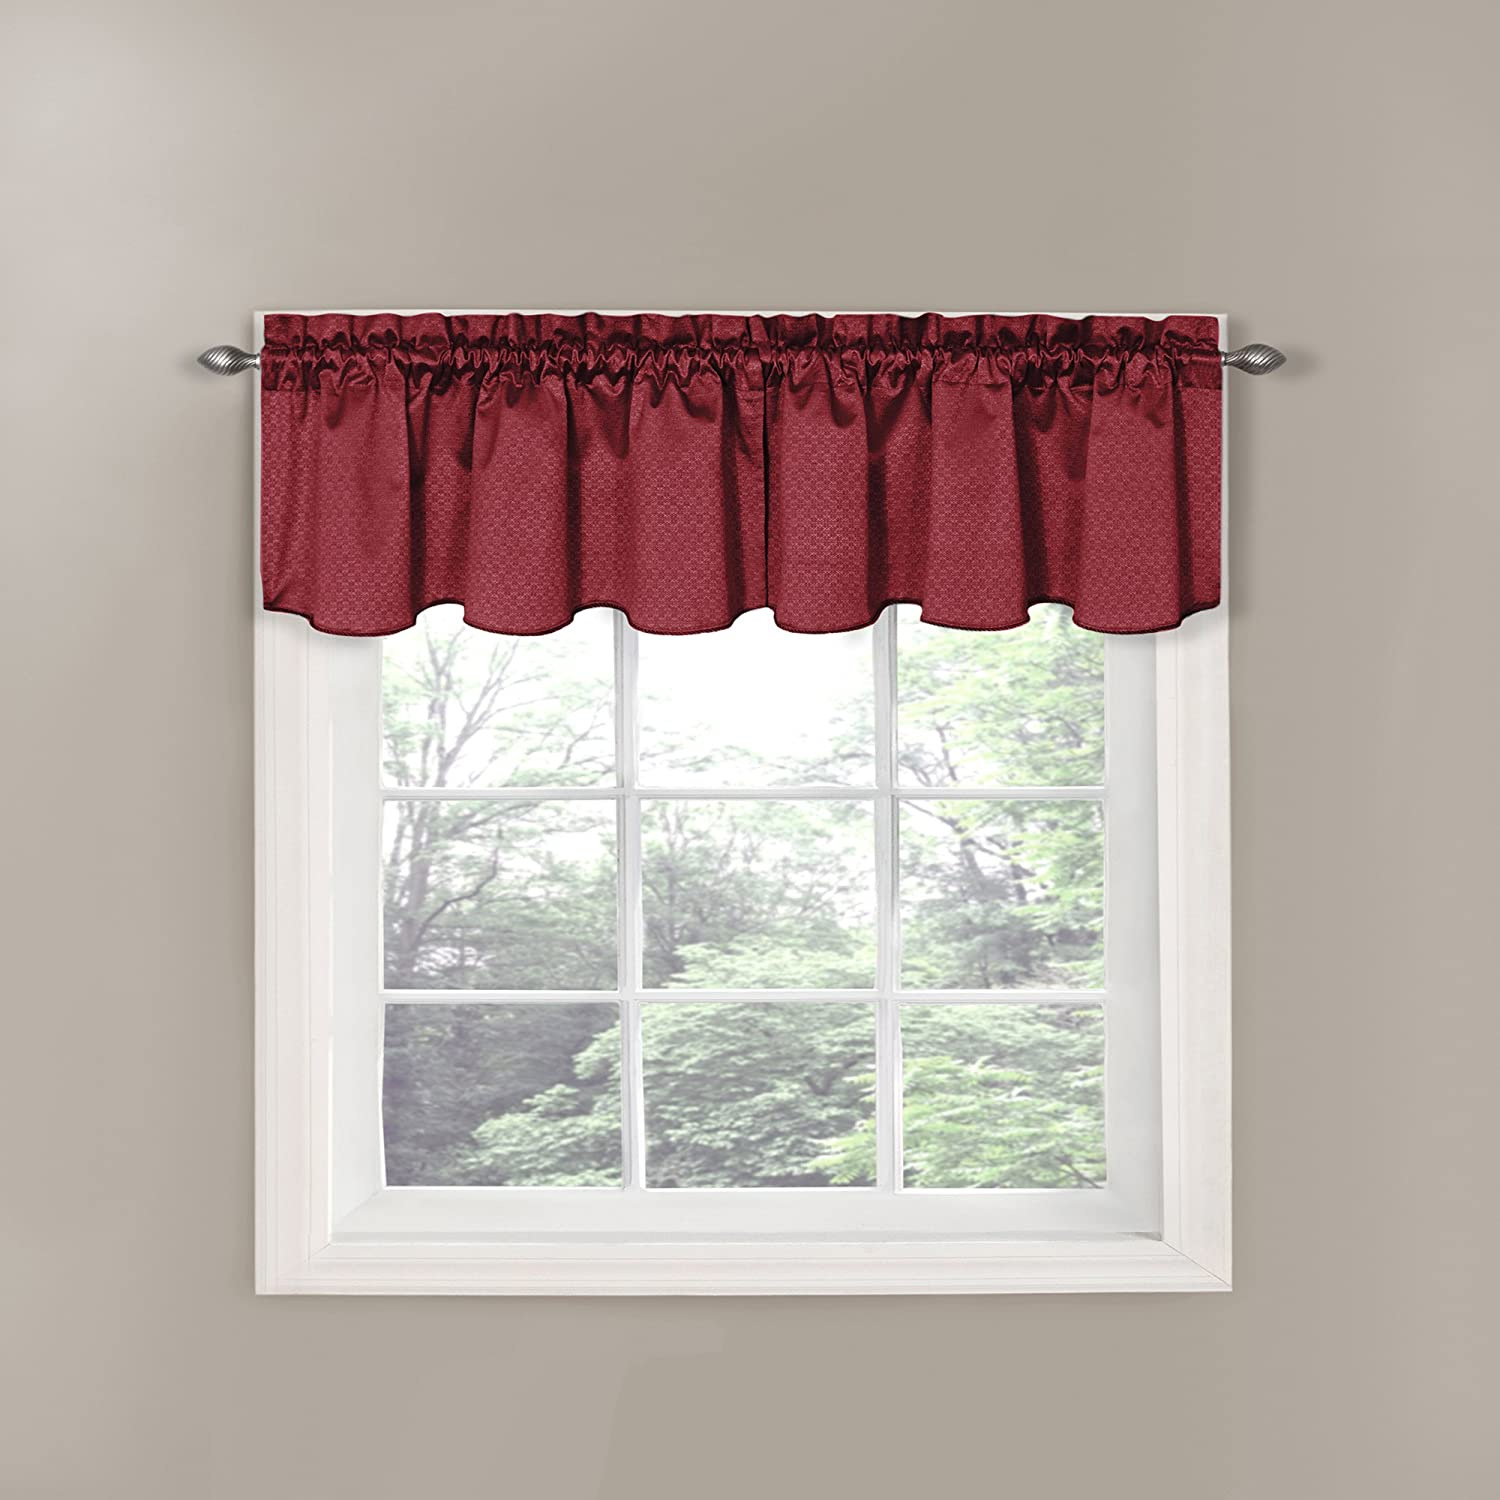 ideas gray valances fabric window with voile brown and sheer plum yellow chocolate wool curtains bedroom bathroom drapes burgundy white kitchen valance blue marker